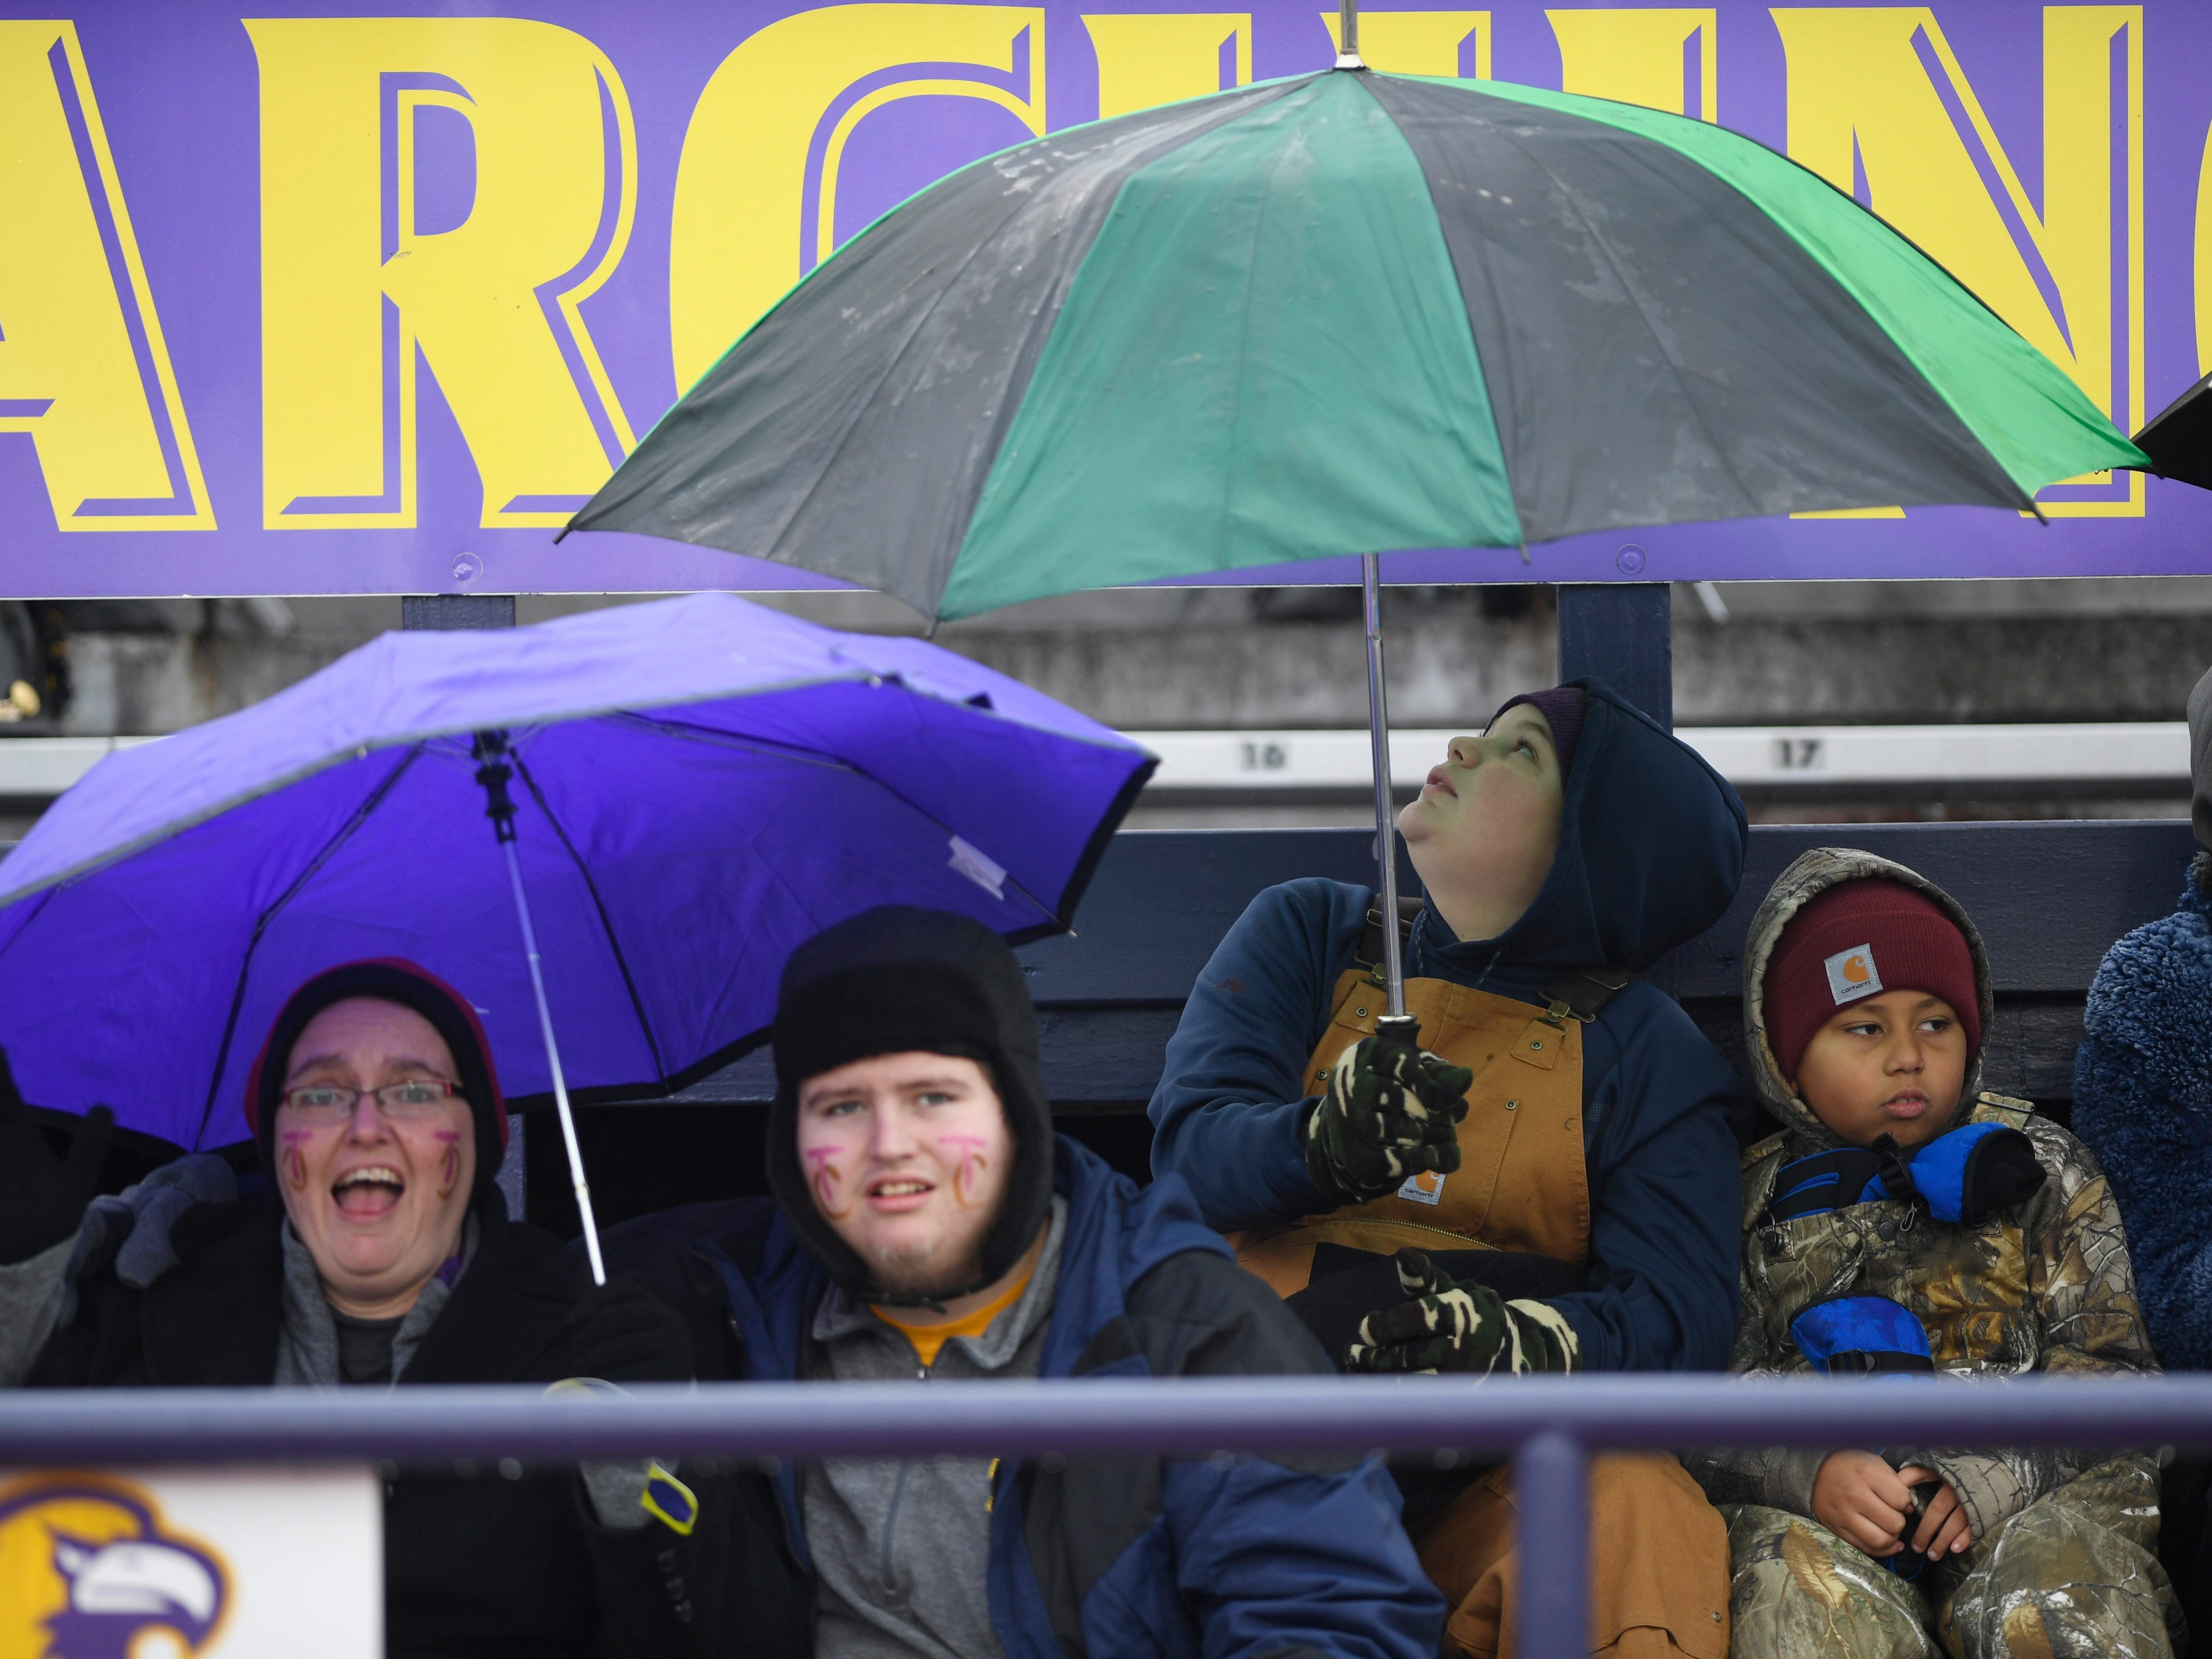 Trousdale County fans huddle against the cold and rain during the Class 2A BlueCross Bowl state championship at Tennessee Tech's Tucker Stadium in Cookeville, Tenn., on Thursday, Nov. 29, 2018.